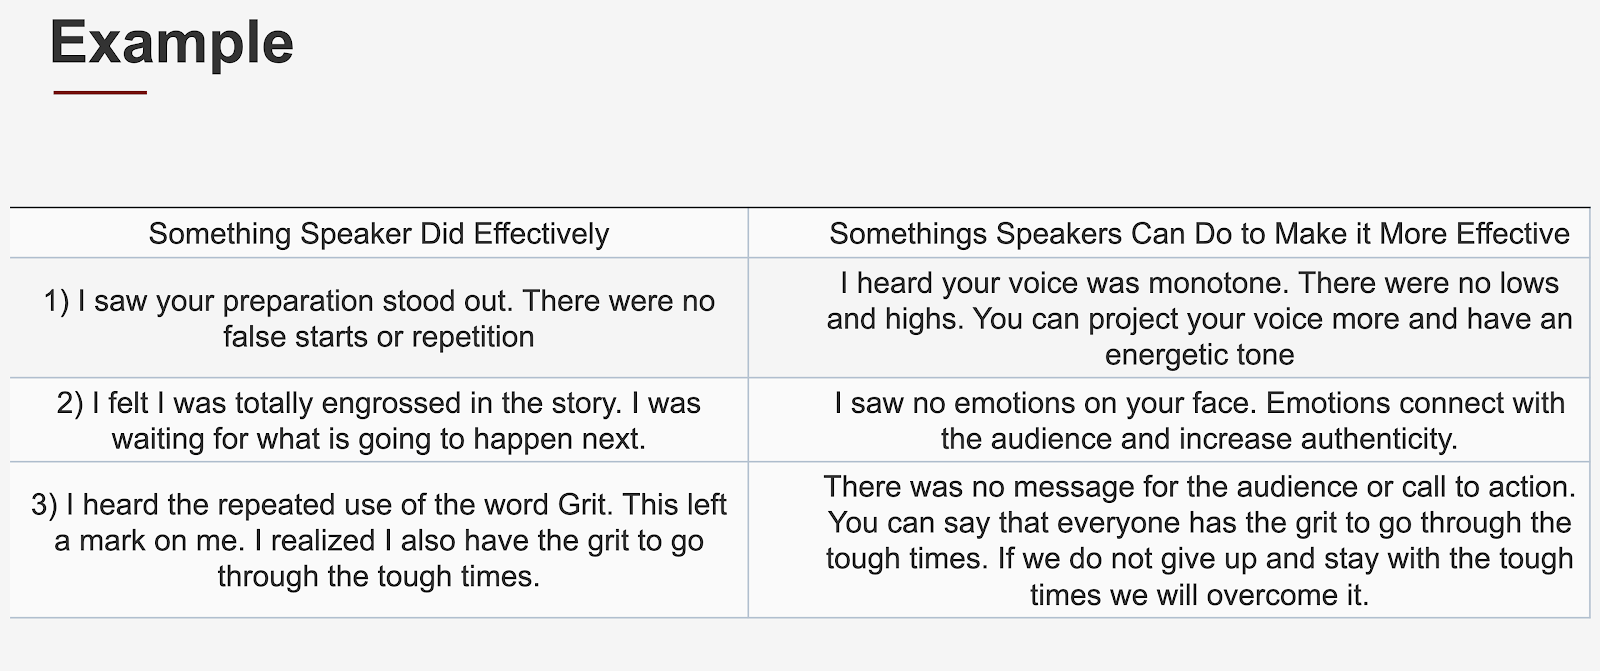 Evaluate Speeches Effectively, How to Evaluate Speeches Effectively